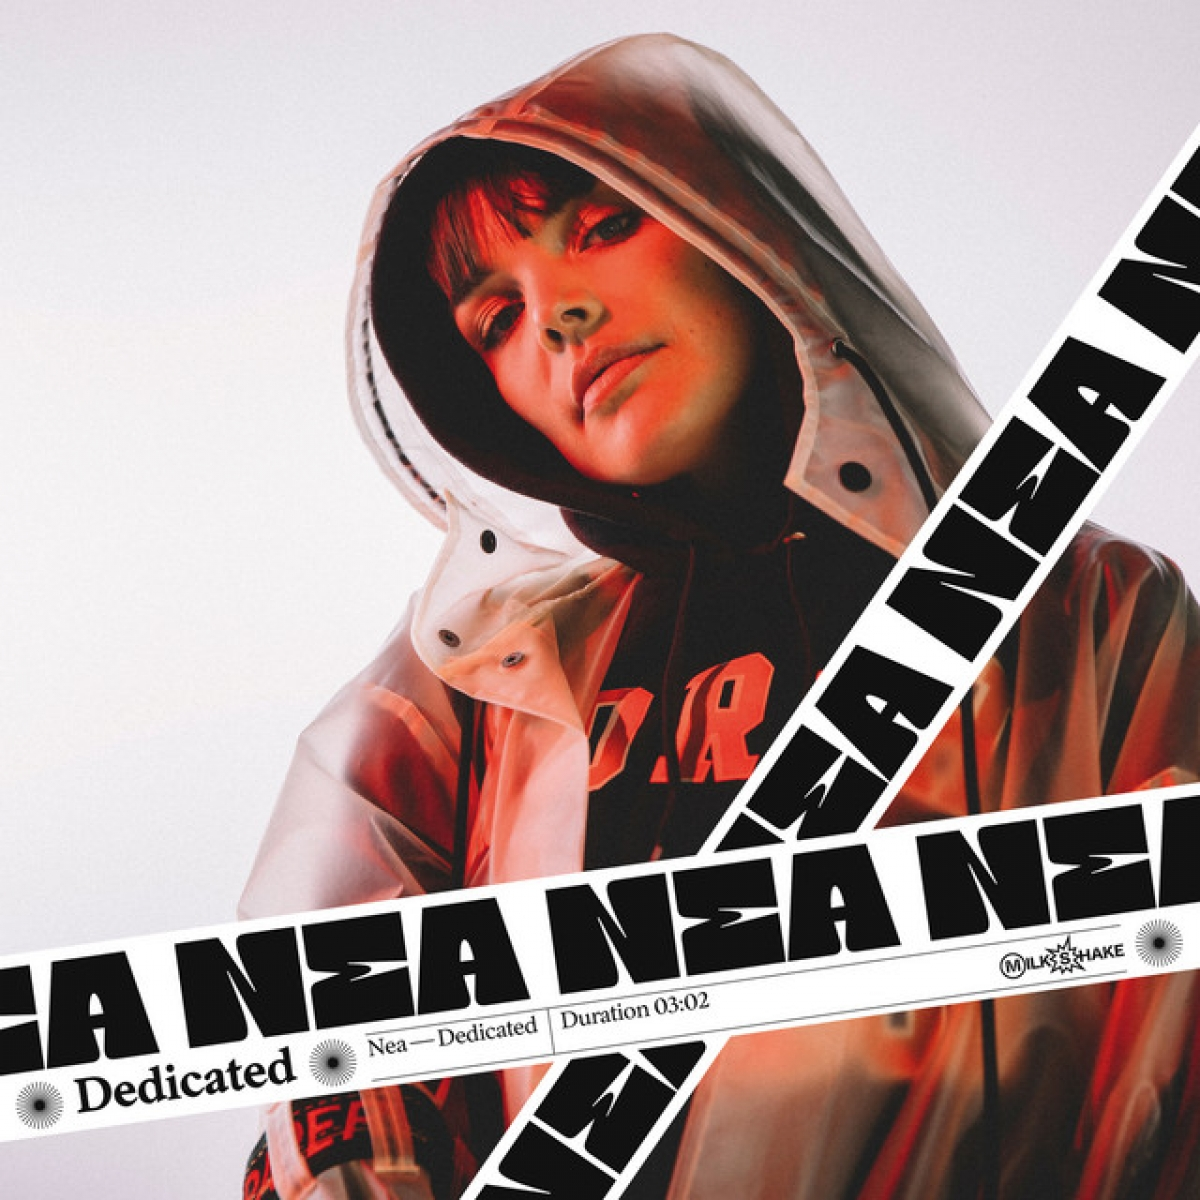 NEA - Dedicated